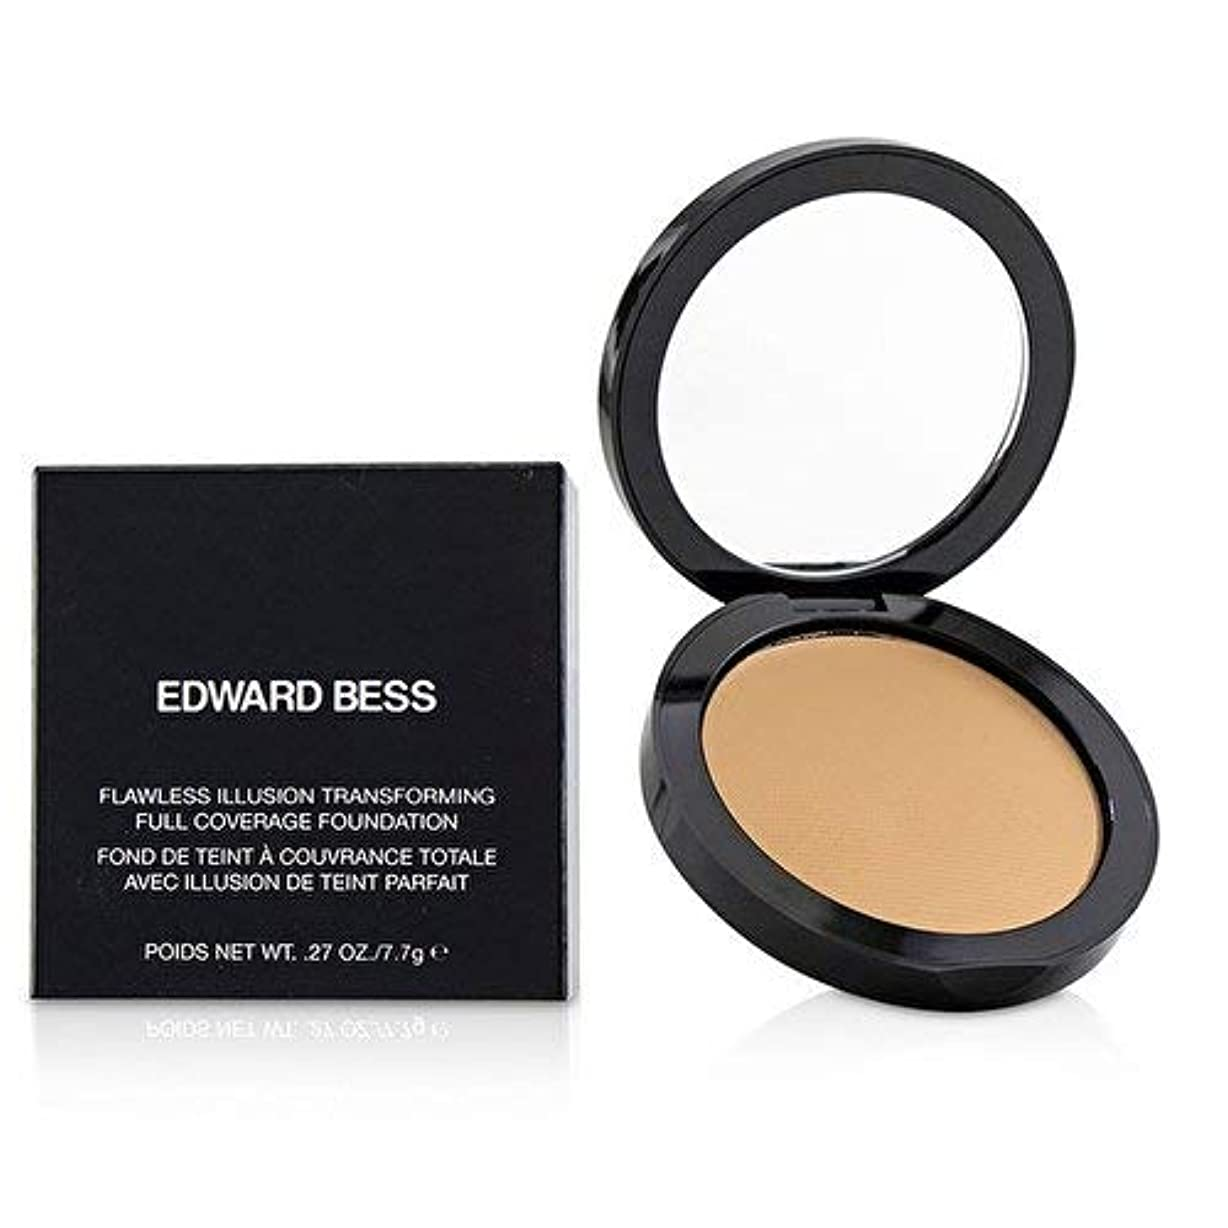 横たわるずるい後悔エドワードべス Flawless Illusion Transforming Full Coverage Foundation - # Light 7.7g/0.27oz並行輸入品